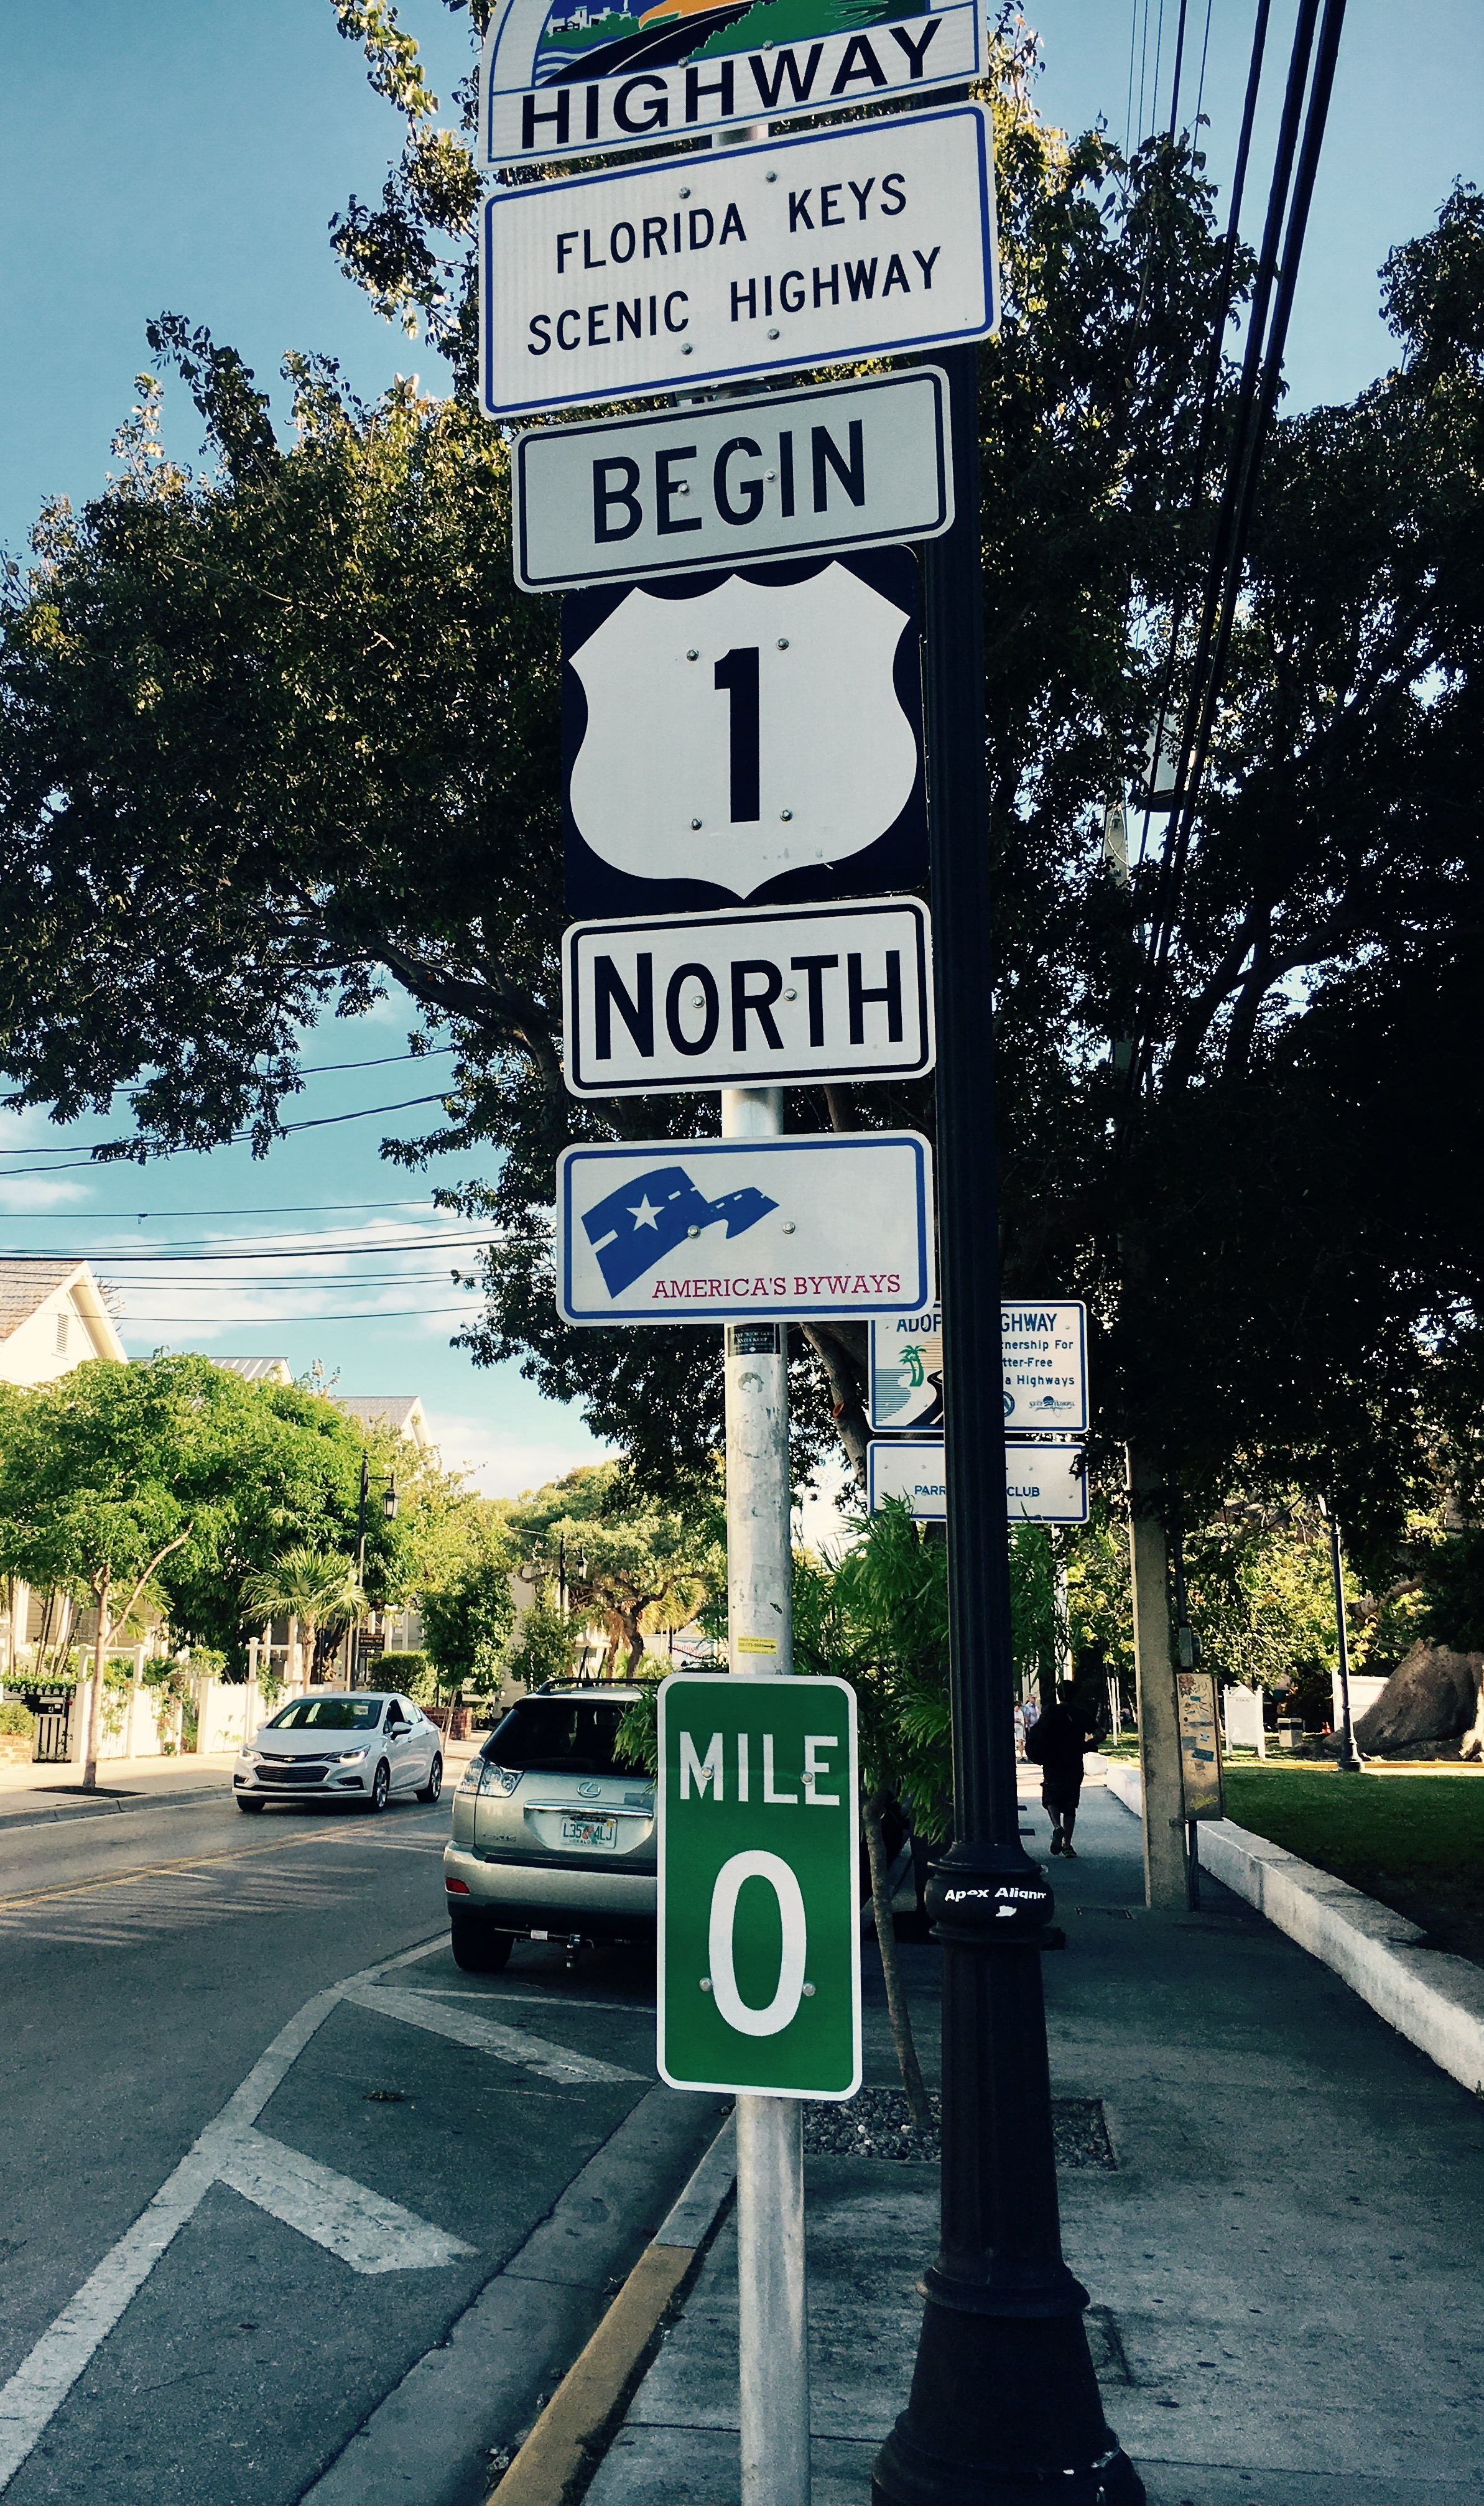 the beginning of highway 1 in Key West